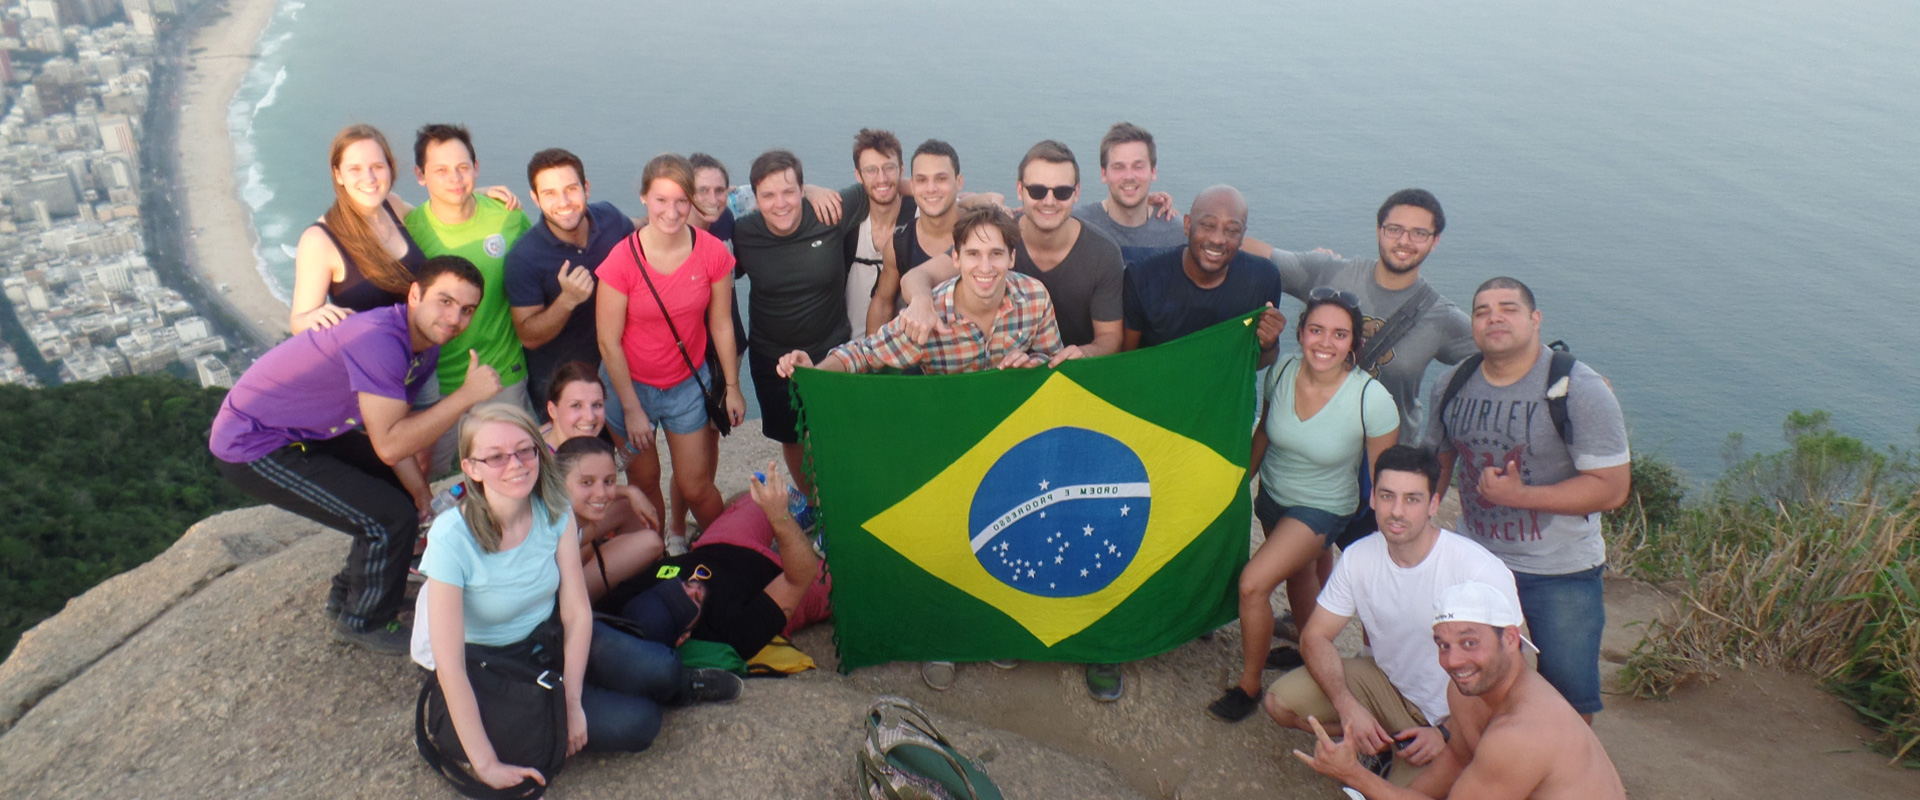 Portuguese language students at Morro Dois Irmão in the RioLIVE! Activities in Rio de Janeiro.